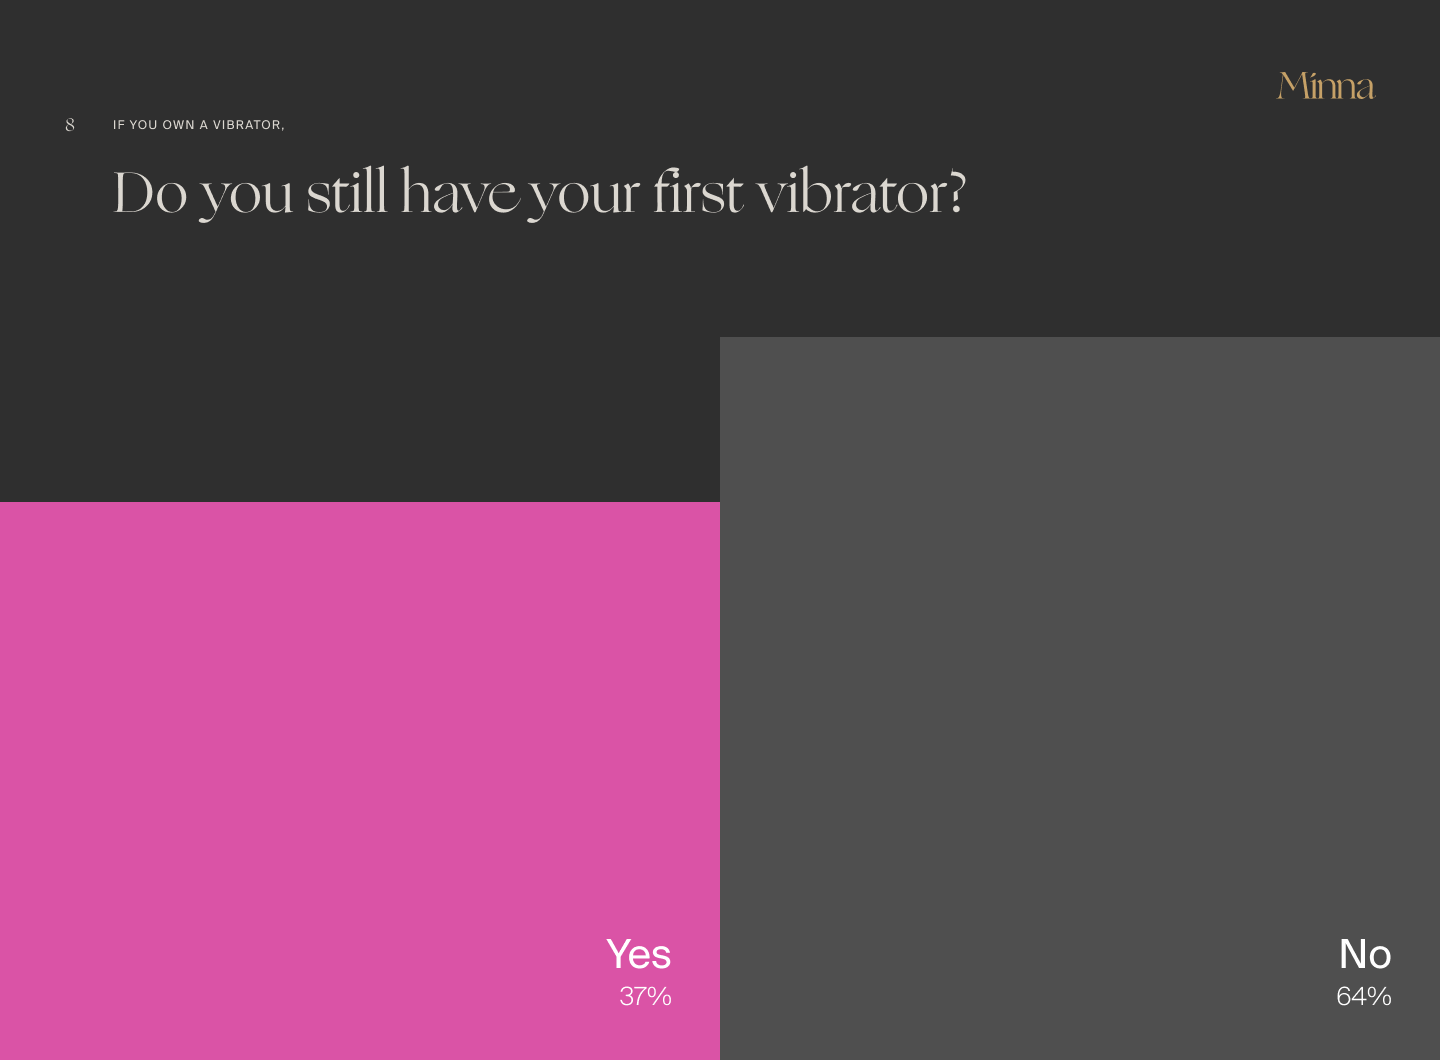 Do you still have your first vibrator?